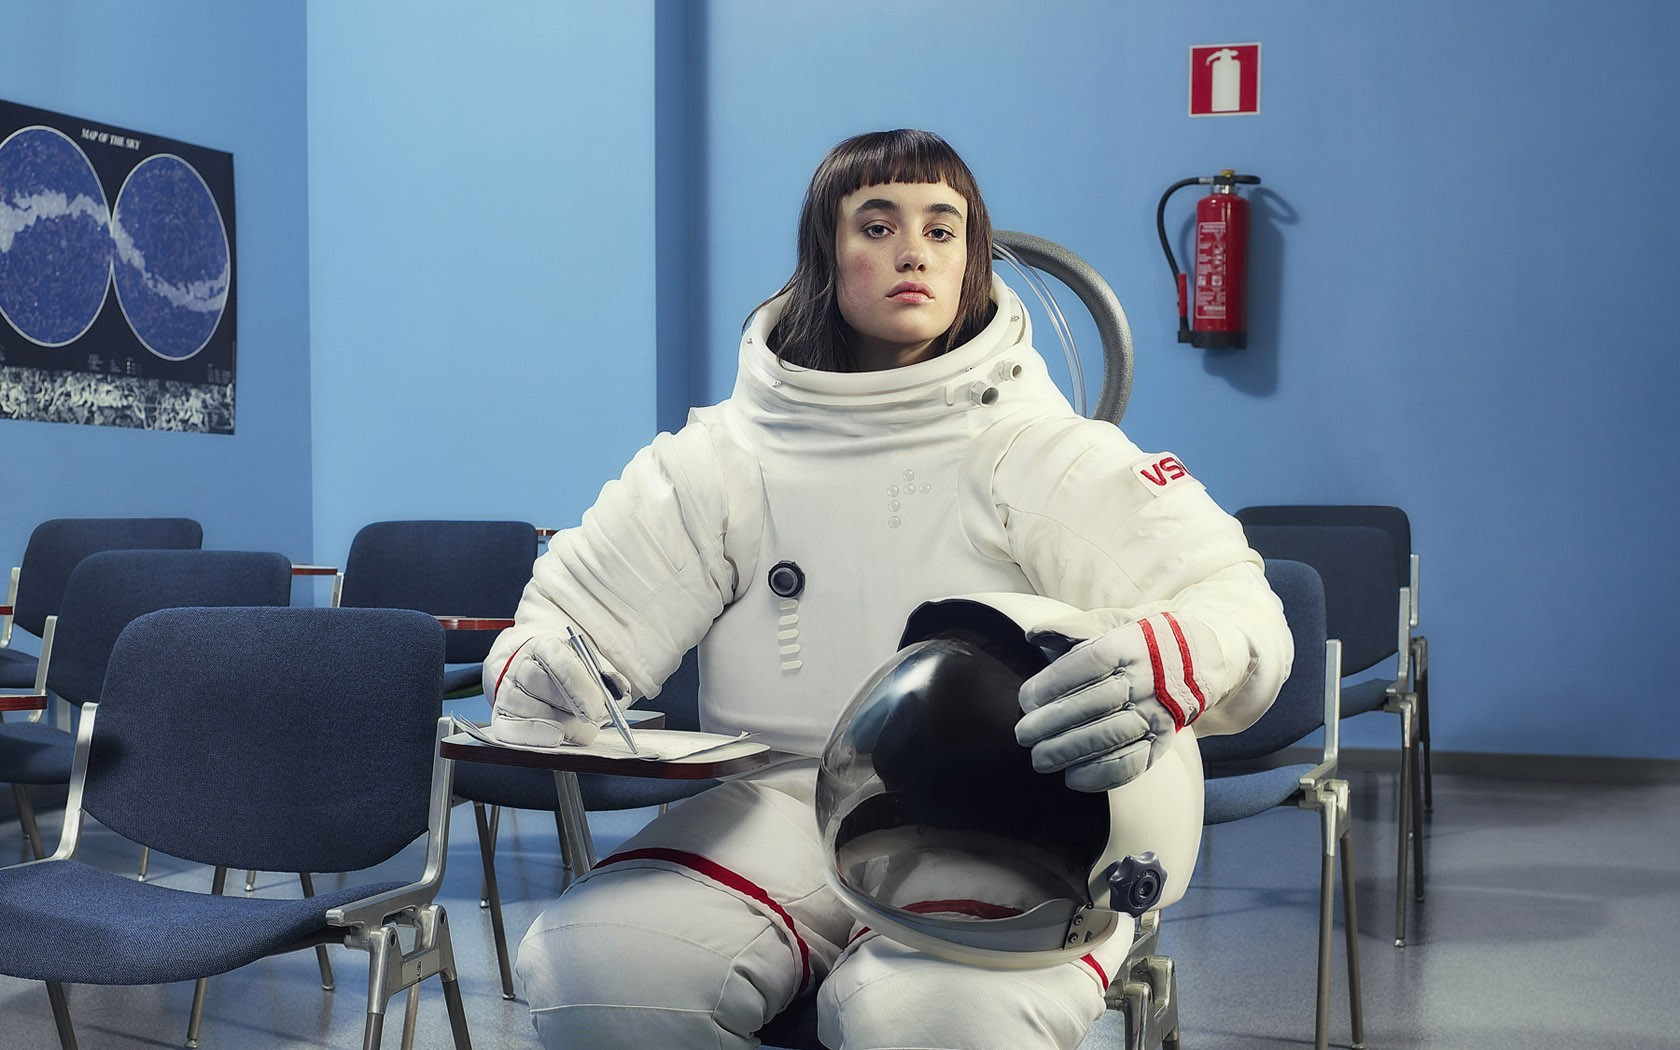 girl in space suit wallpaper - photo #37